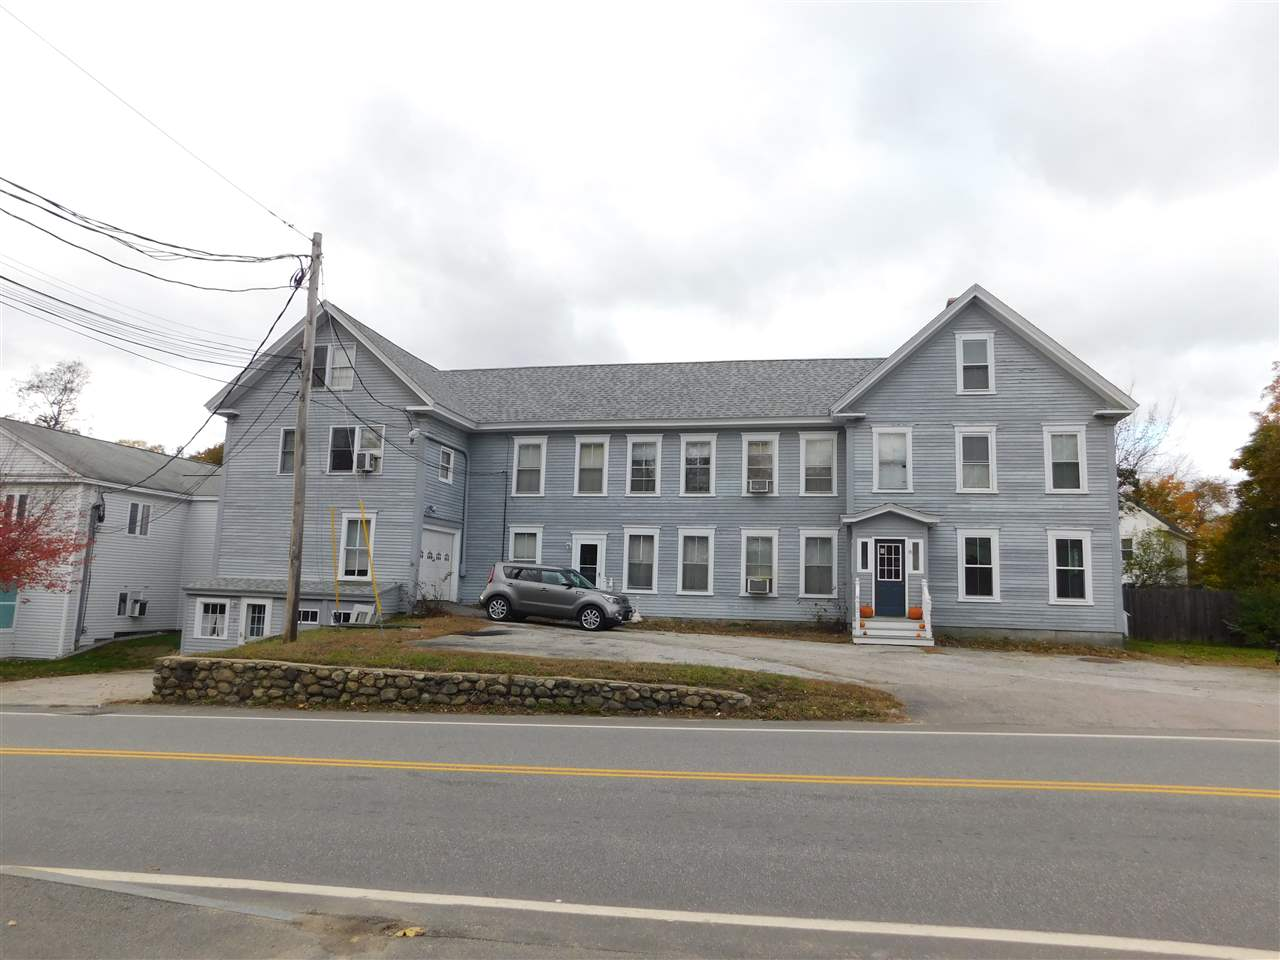 Photo of 8 Pleasant Street Goffstown NH 03045